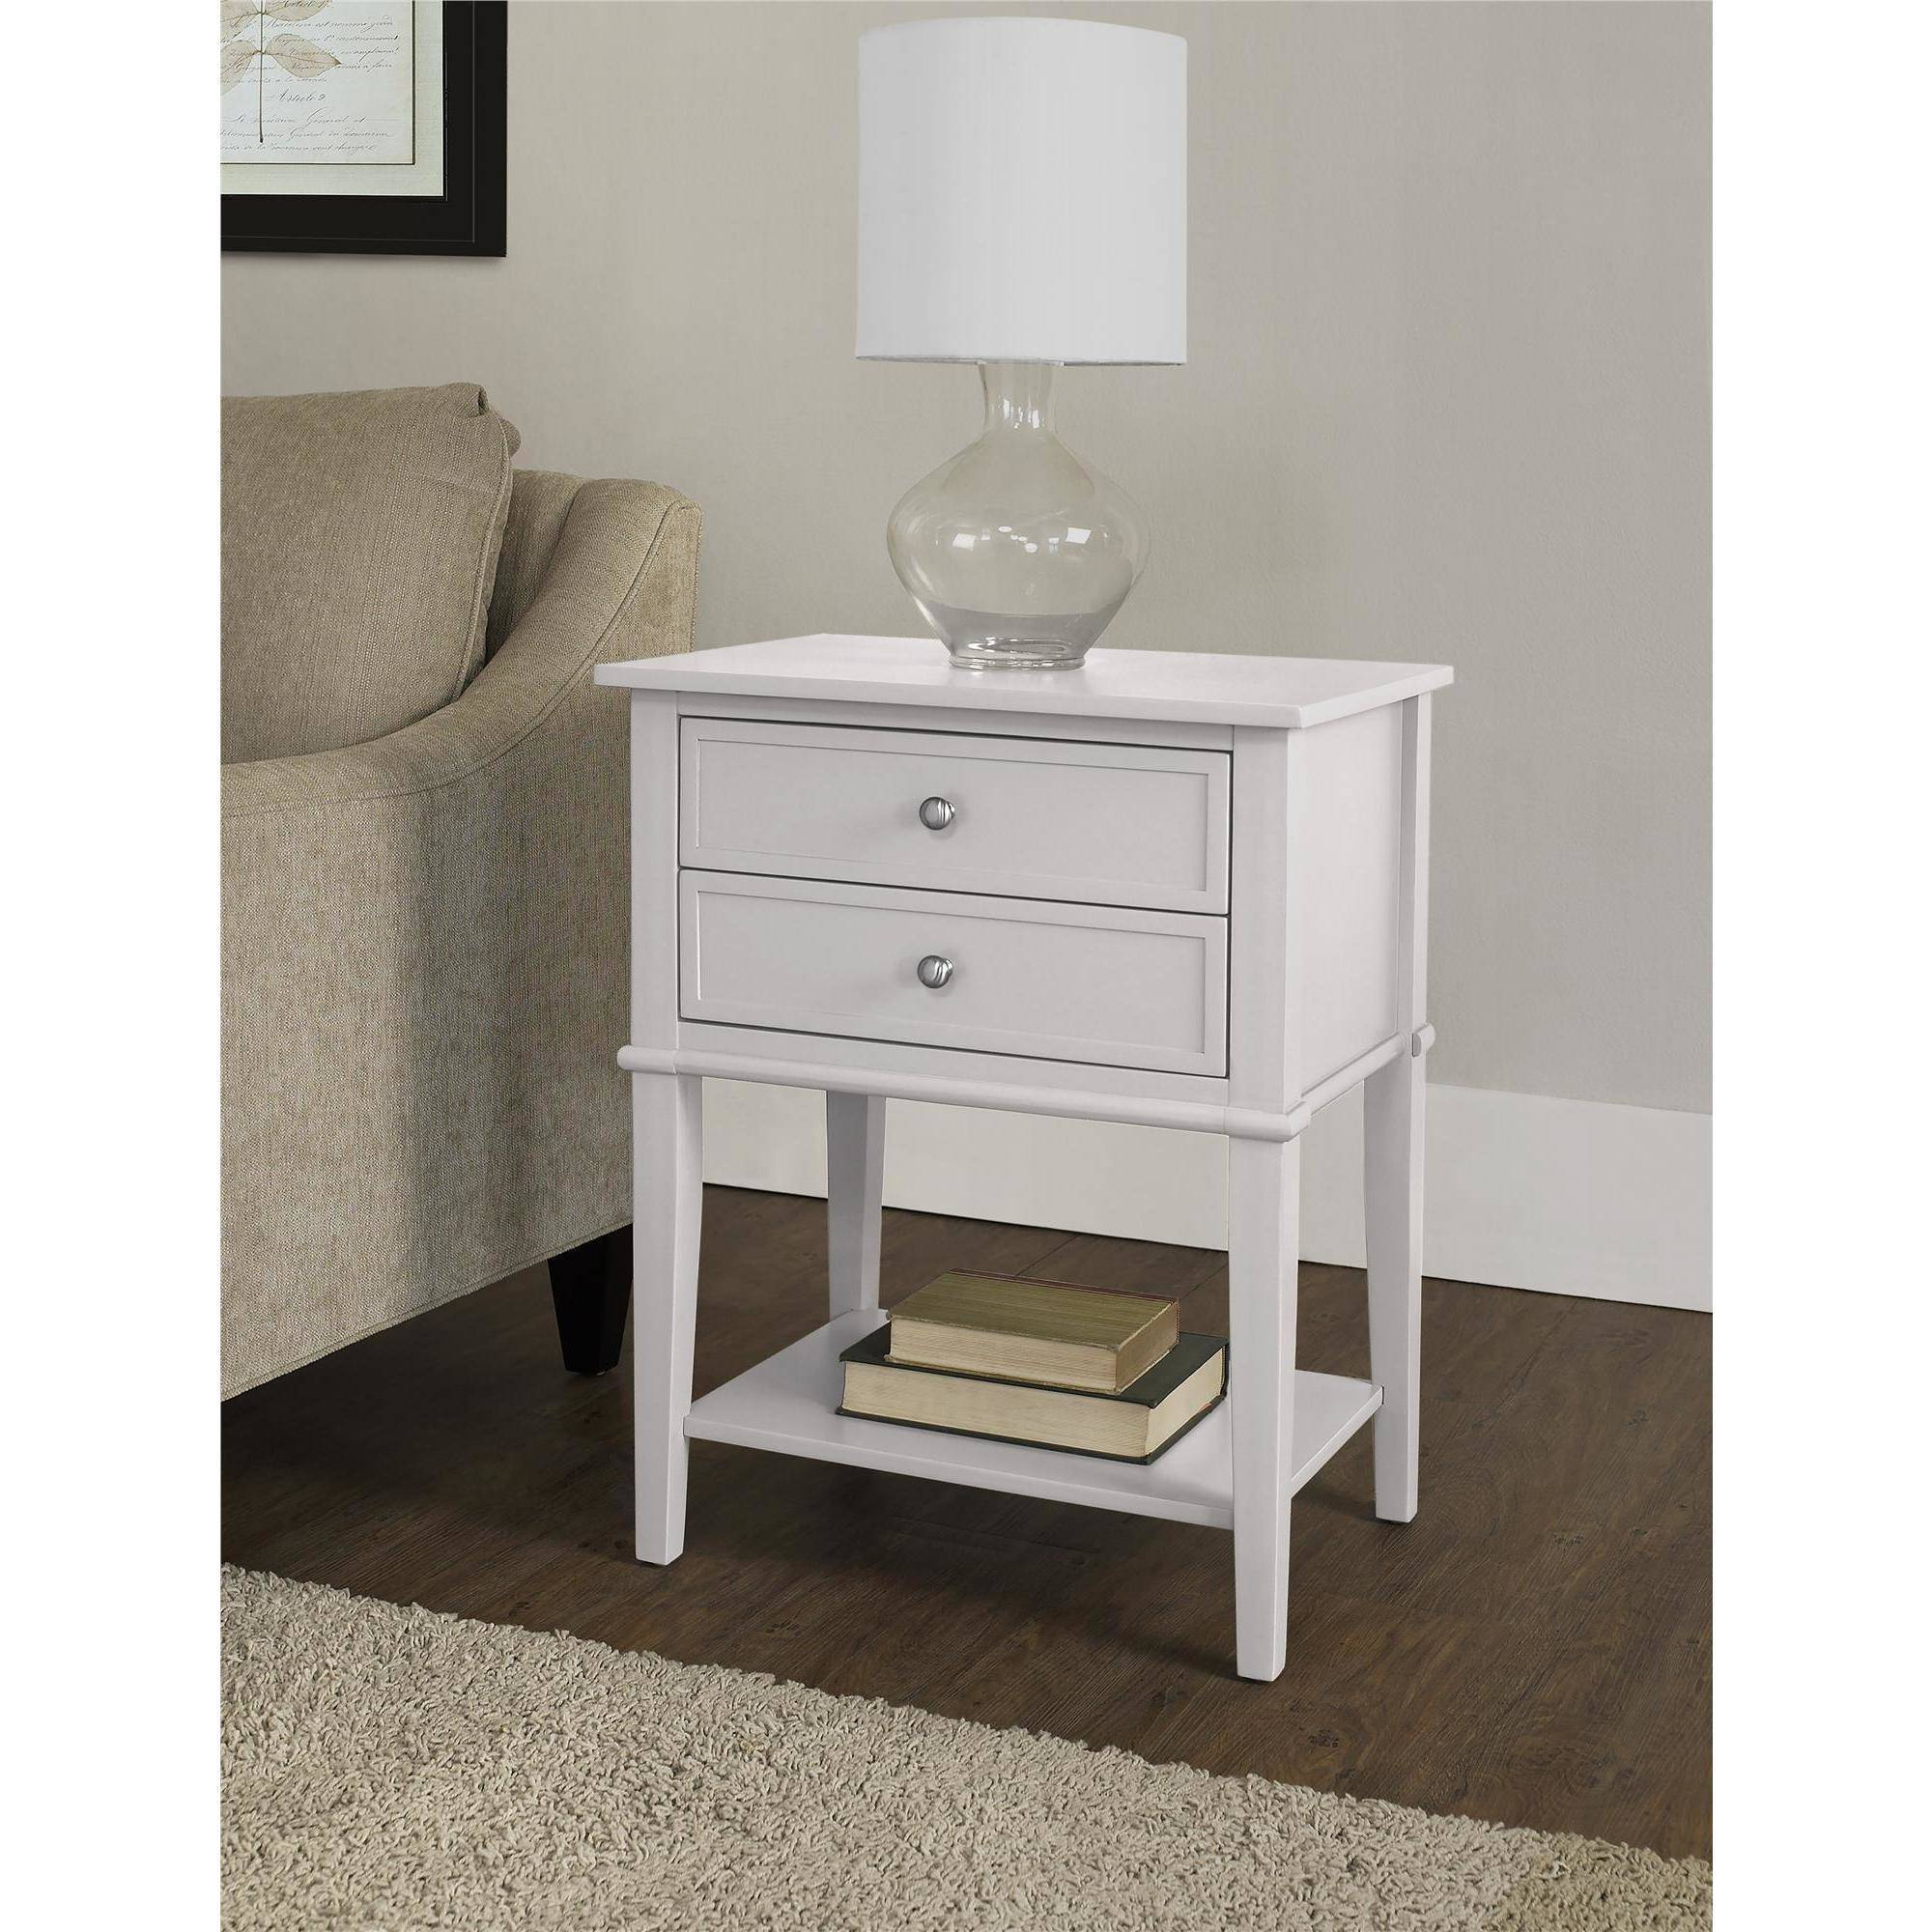 altra franklin accent table with drawers white ture beach themed room decor counter height bench resin patio end gray skinny console storage pottery barn swivel chair rustic small